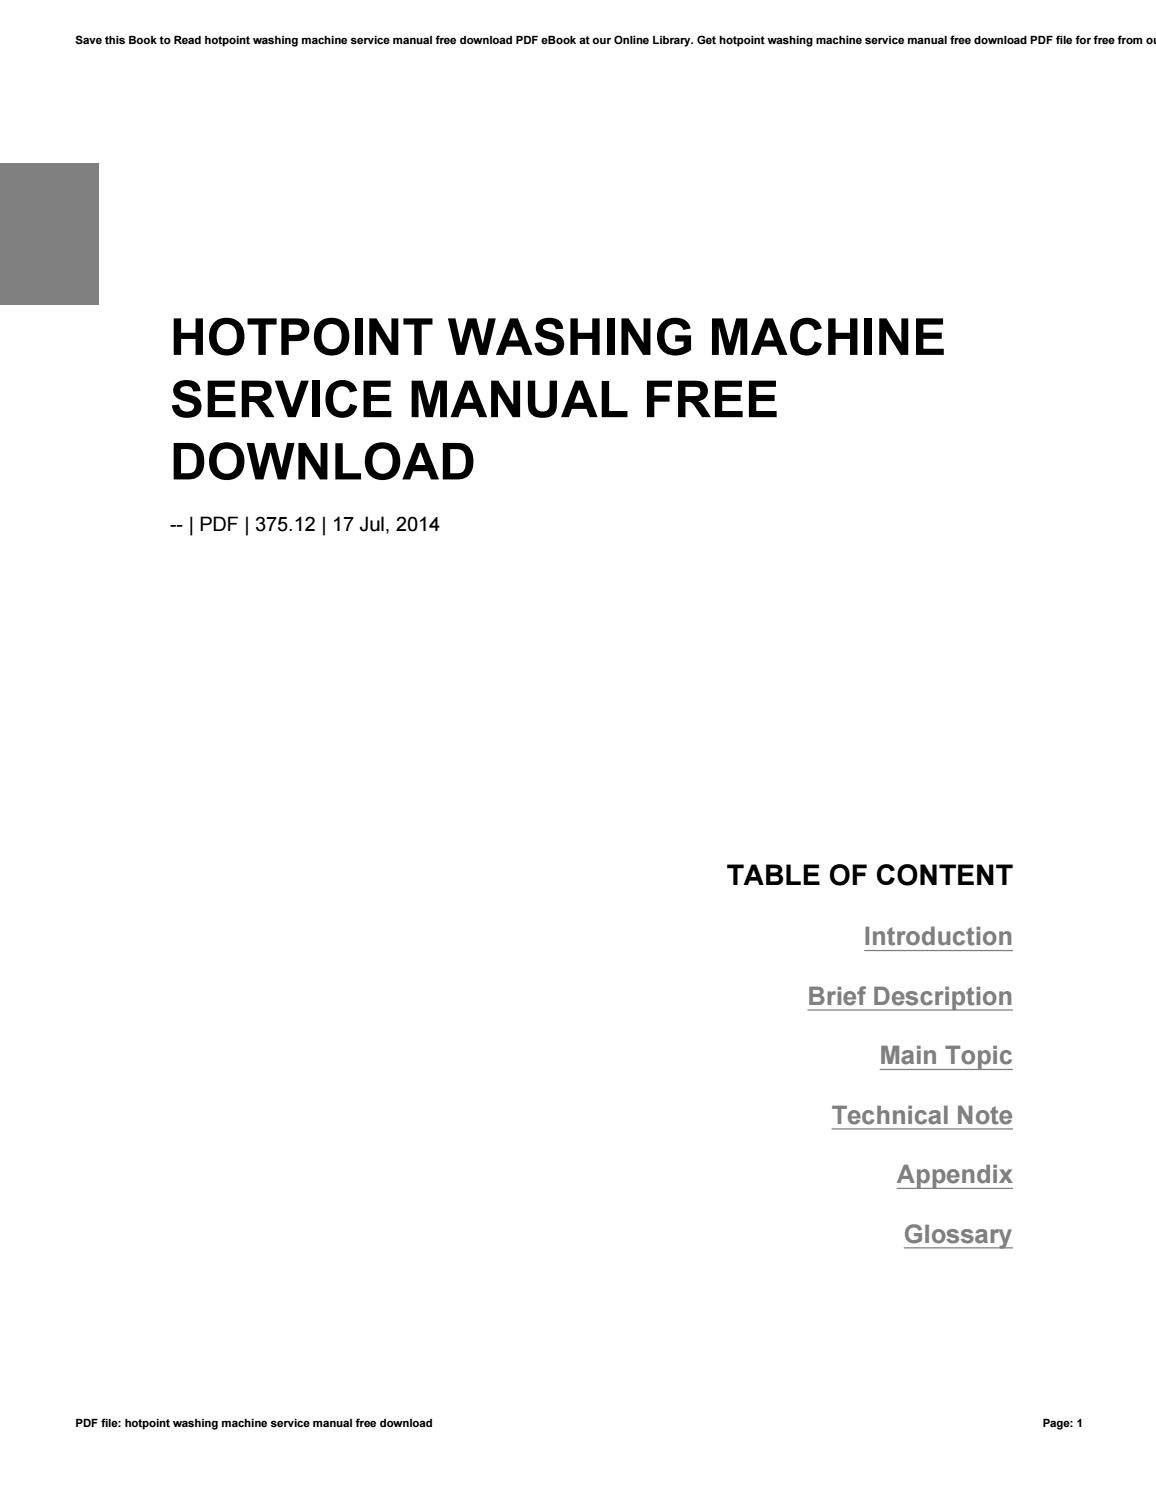 Hotpoint washing machine service manual free download by